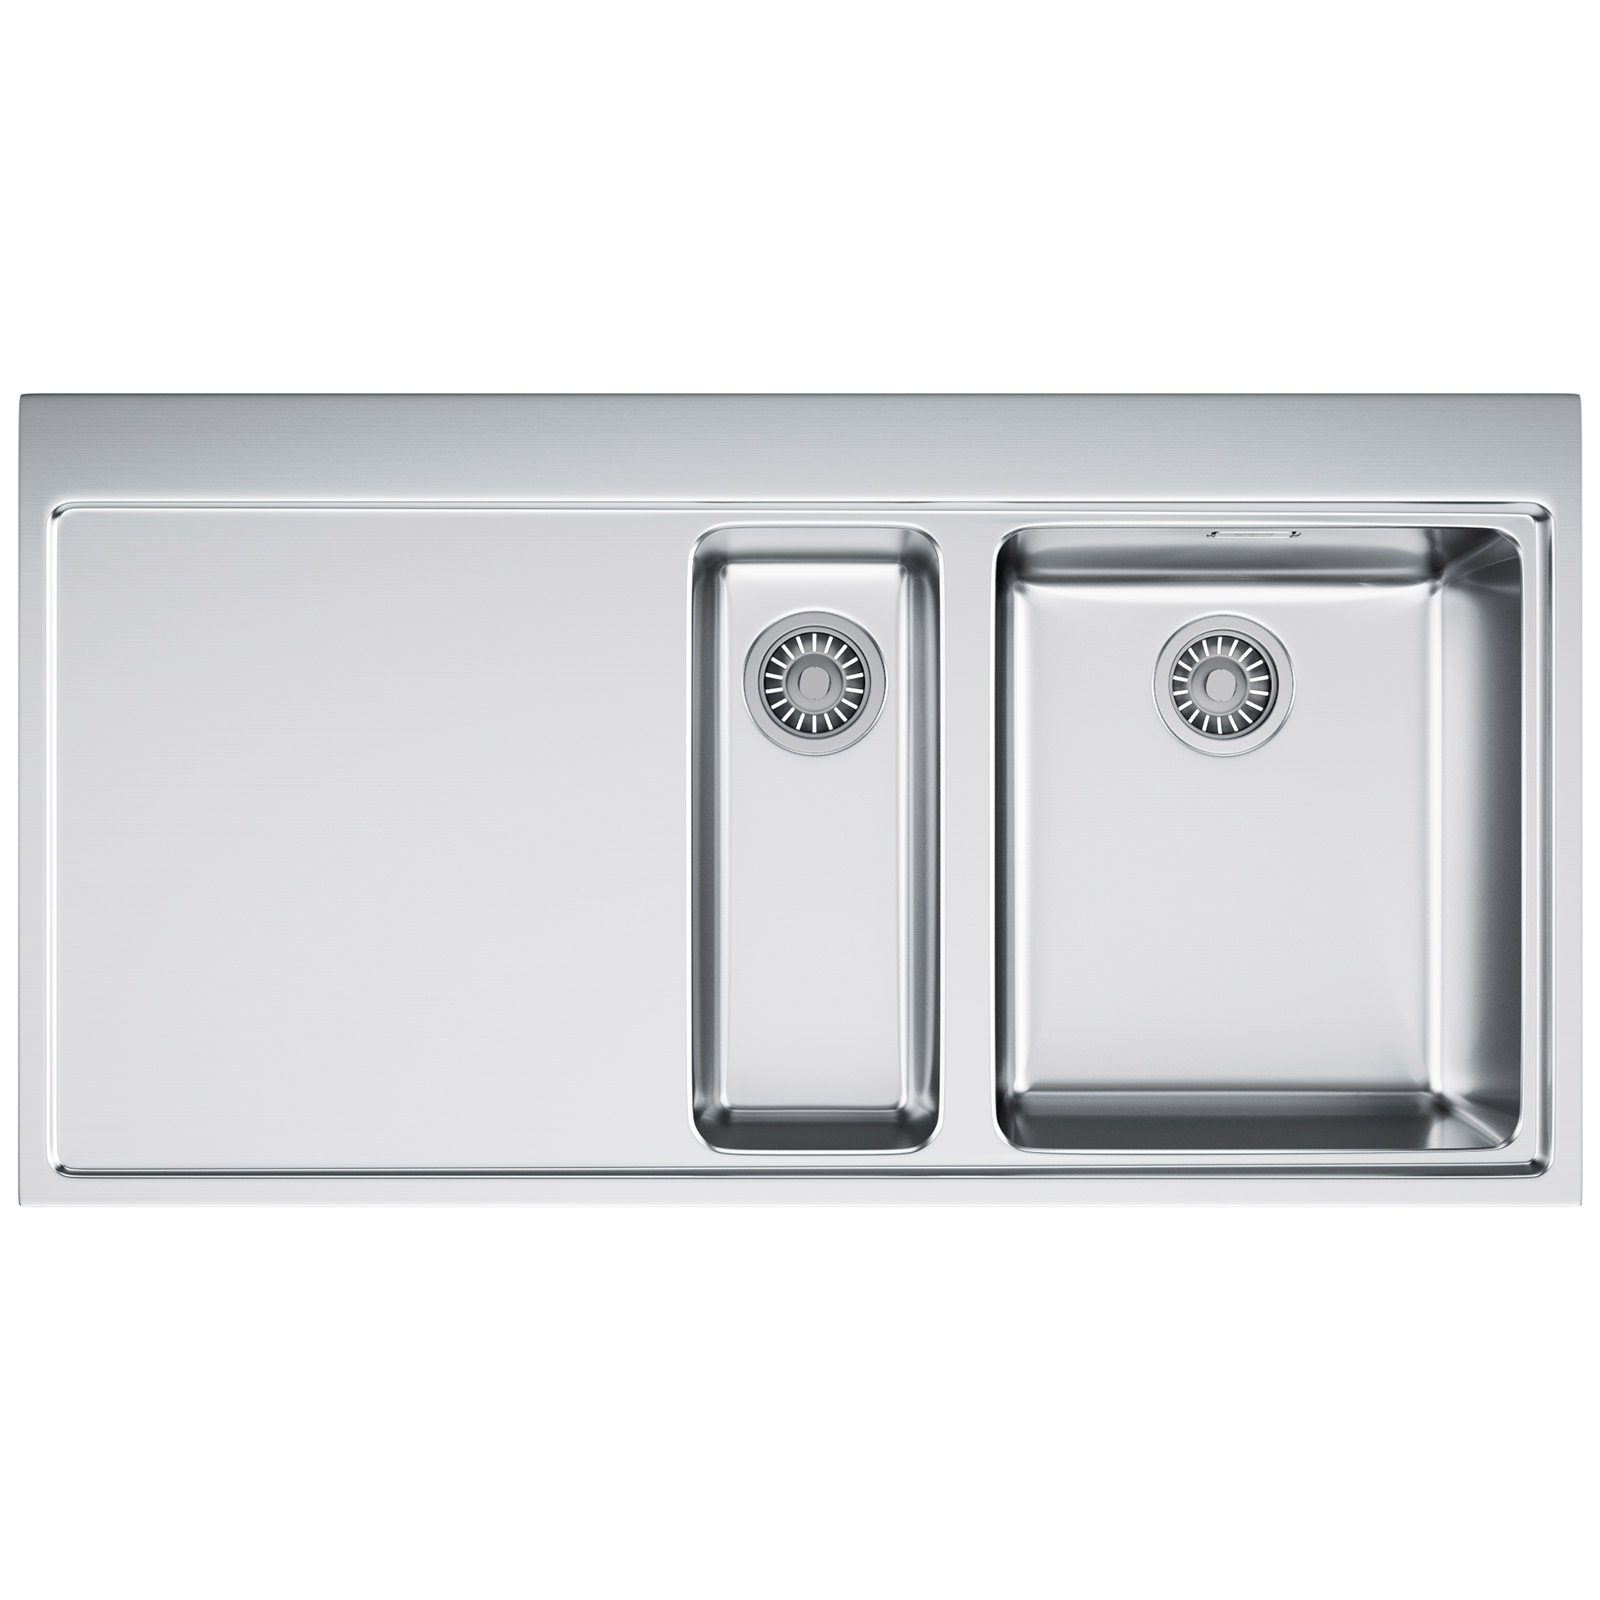 Franke Stainless Steel Sink : Franke Mythos MMX 251 Slim-Top 1.5 Bowl Stainless Steel Inset Sink ...